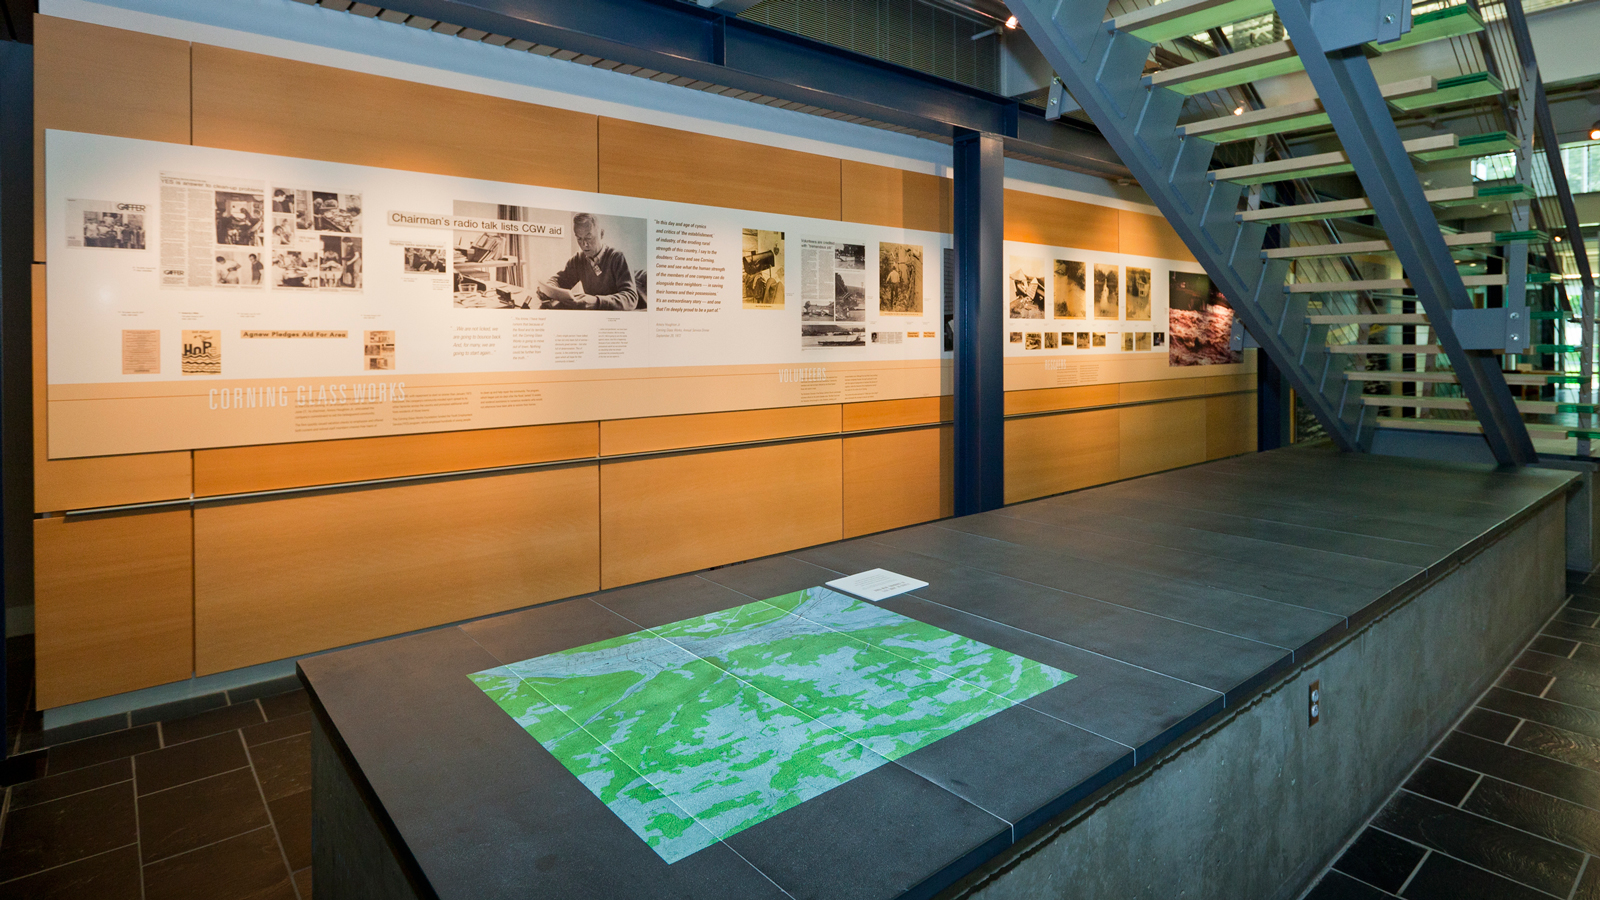 Map showing the flood zone in The Flood of '72 exhibition